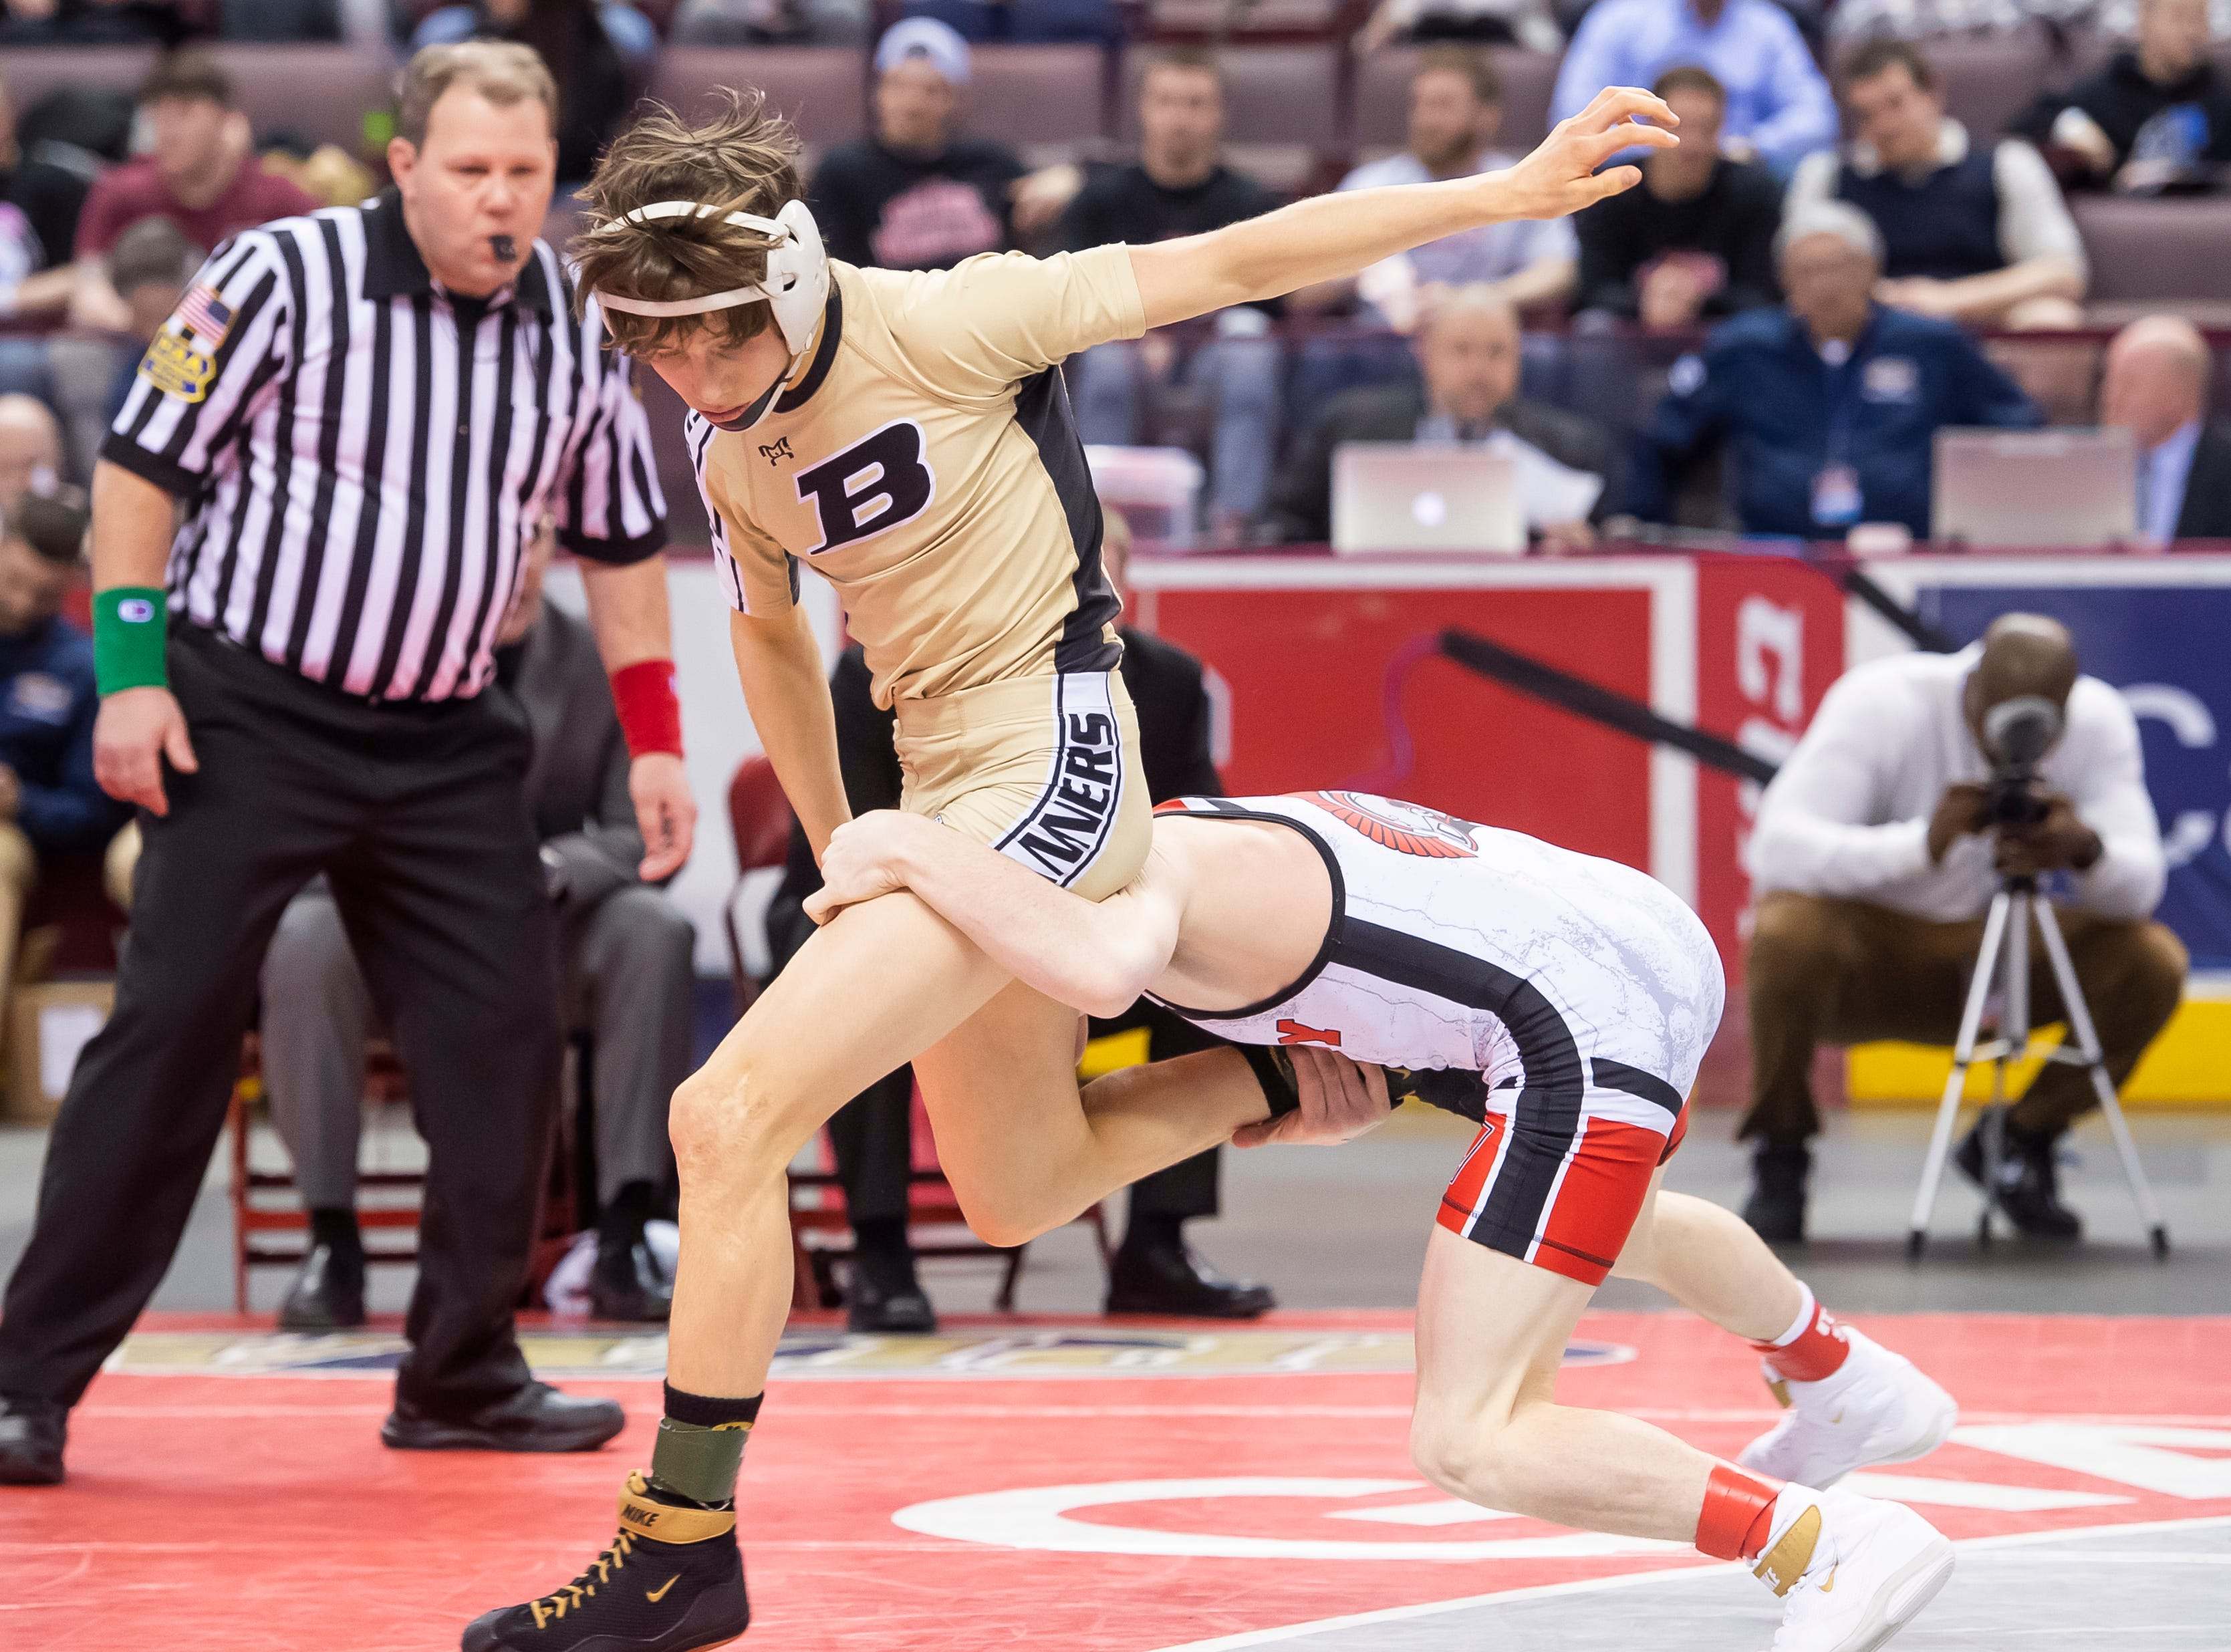 Biglerville's Levi Haines, left, wrestles Troy Area's Sheldon Seymour during the PIAA 2A 106-pound championship bout at the Giant Center in Hershey Saturday, March 9, 2019. Seymour won with a 5-4 decision.